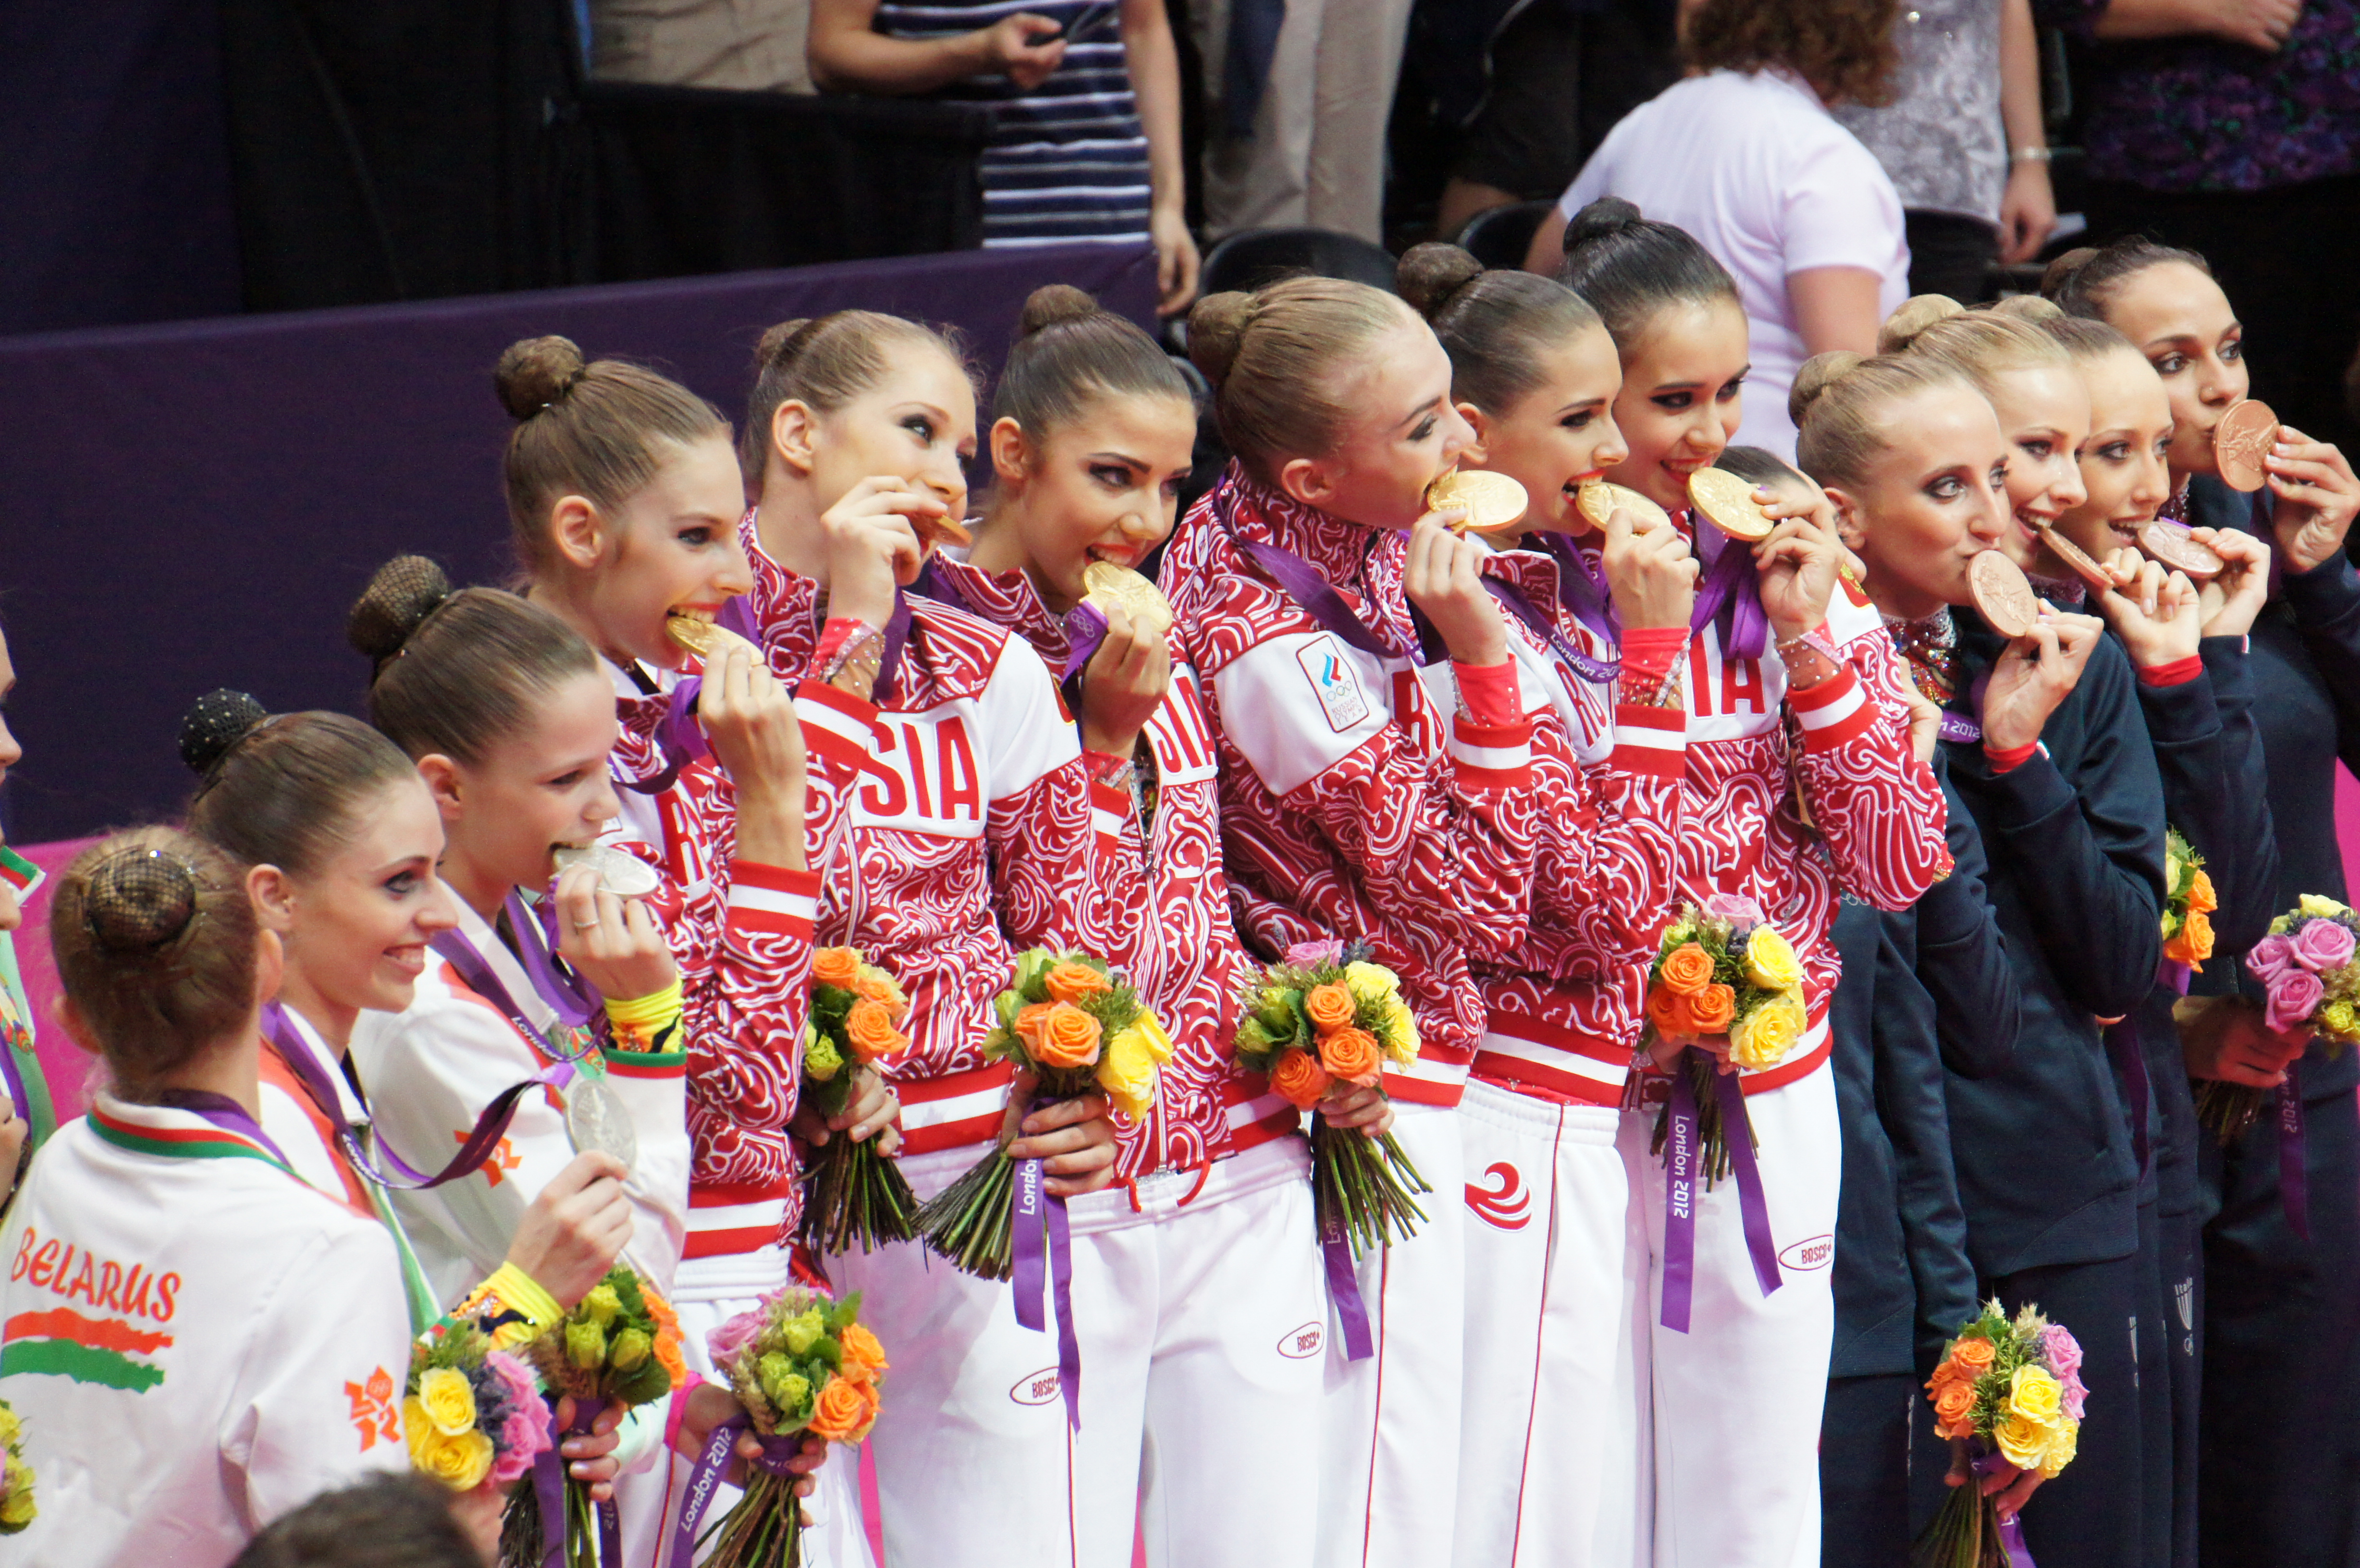 File:London 2012 Rhythmic Gymnastics - medal biting.jpg ...